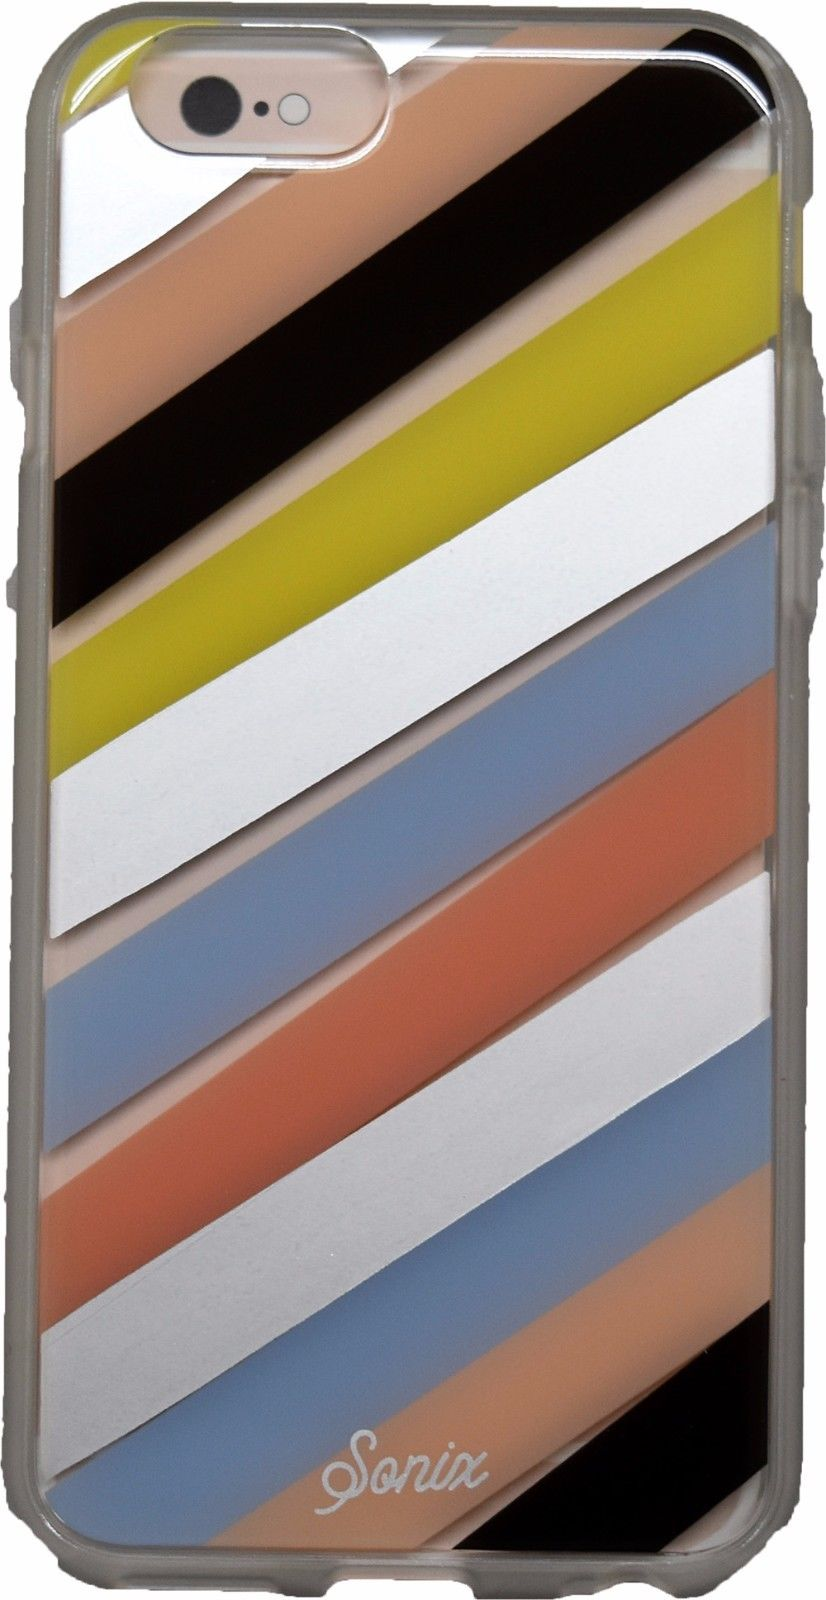 Sonix Iphone 6 6s Checker Stripe Clear Coat Shell Cover Case